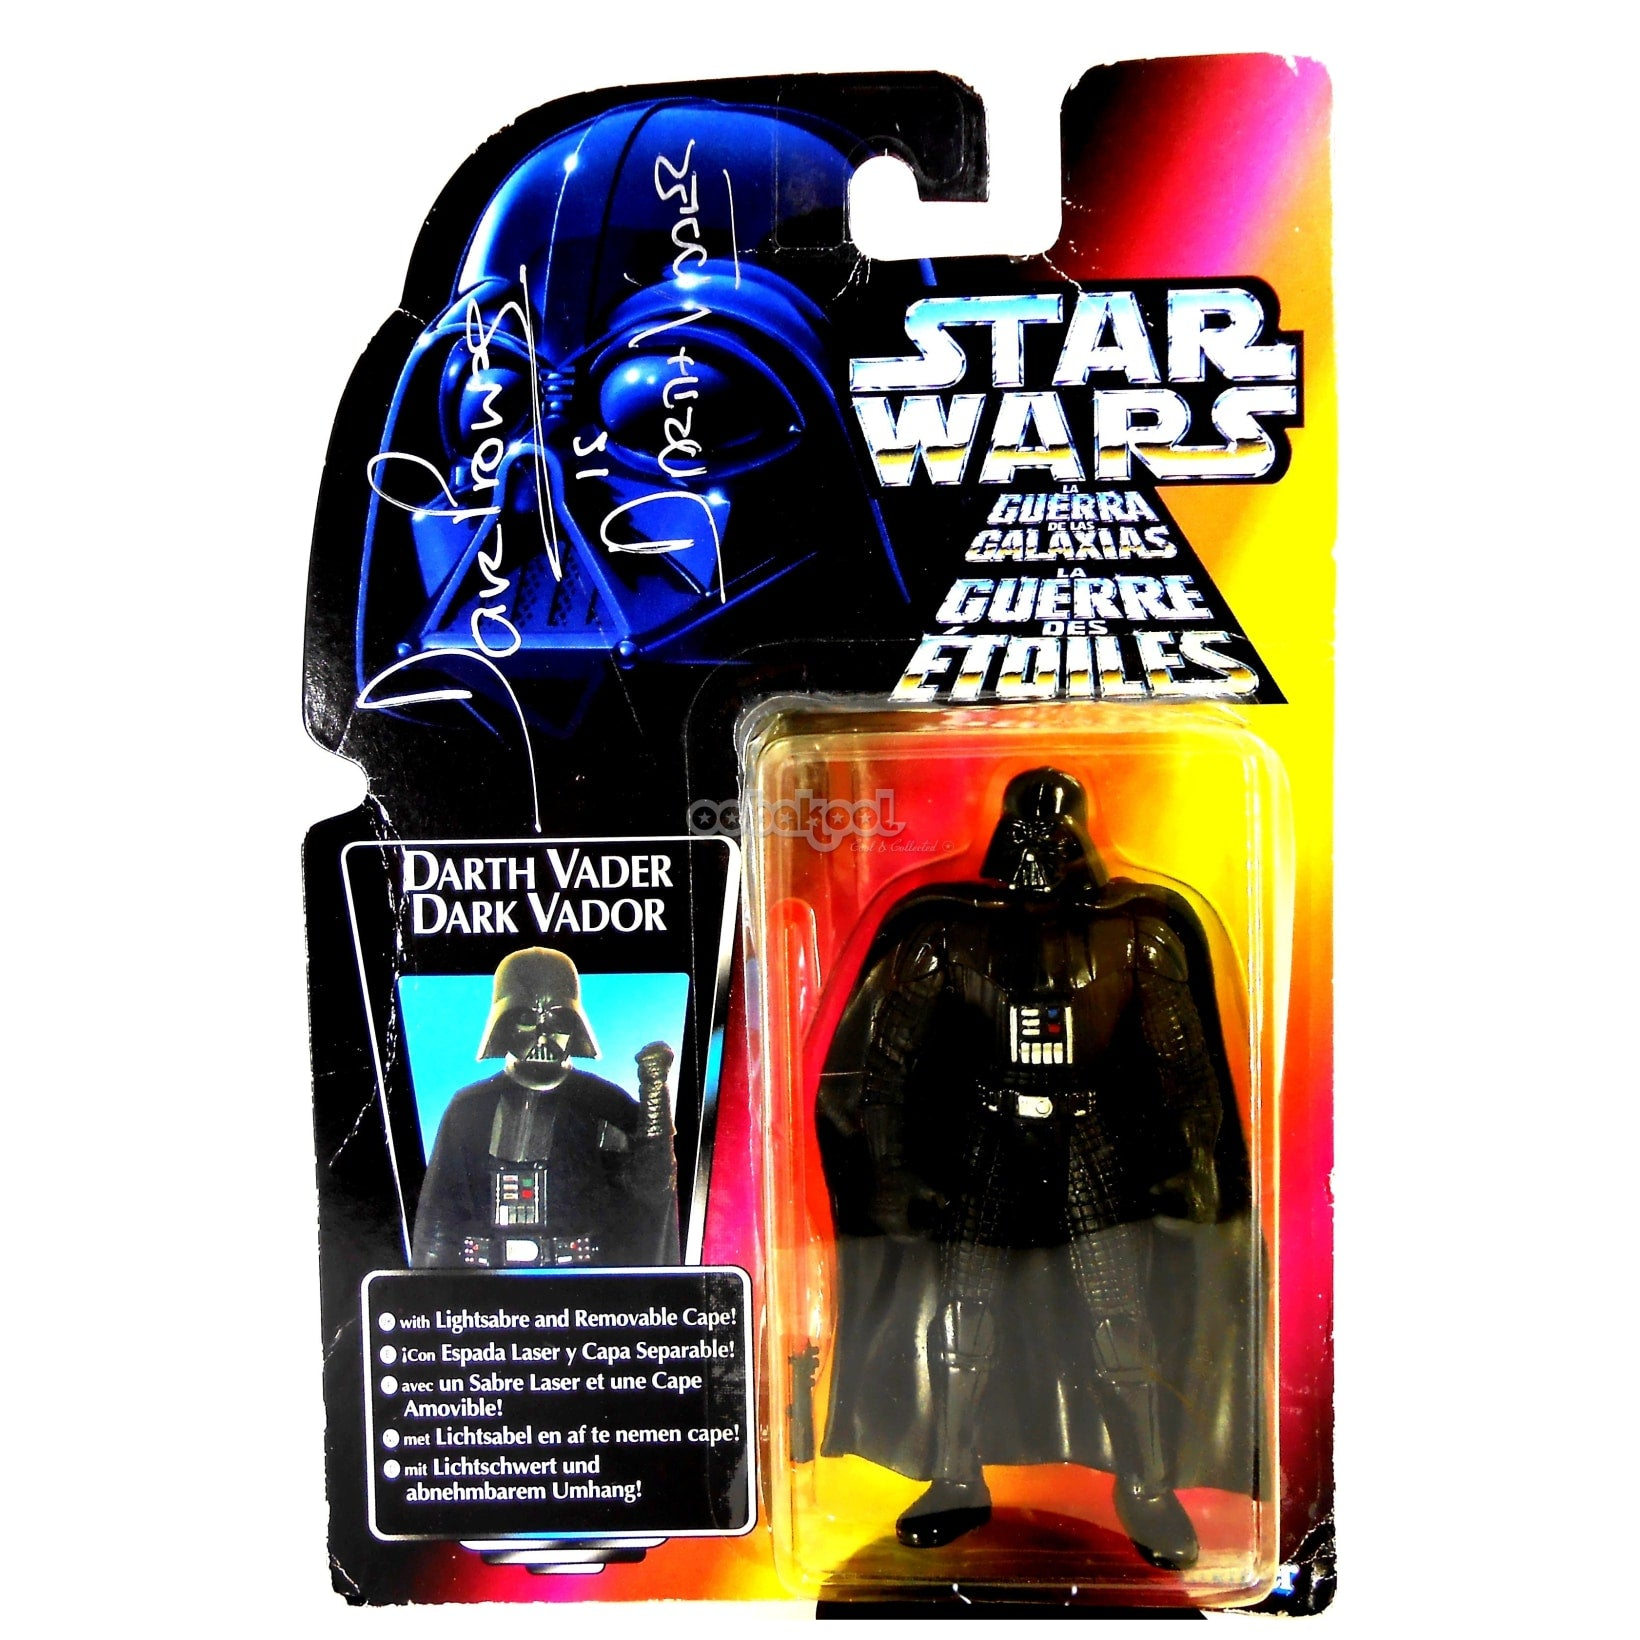 star wars action figure price guide 1995